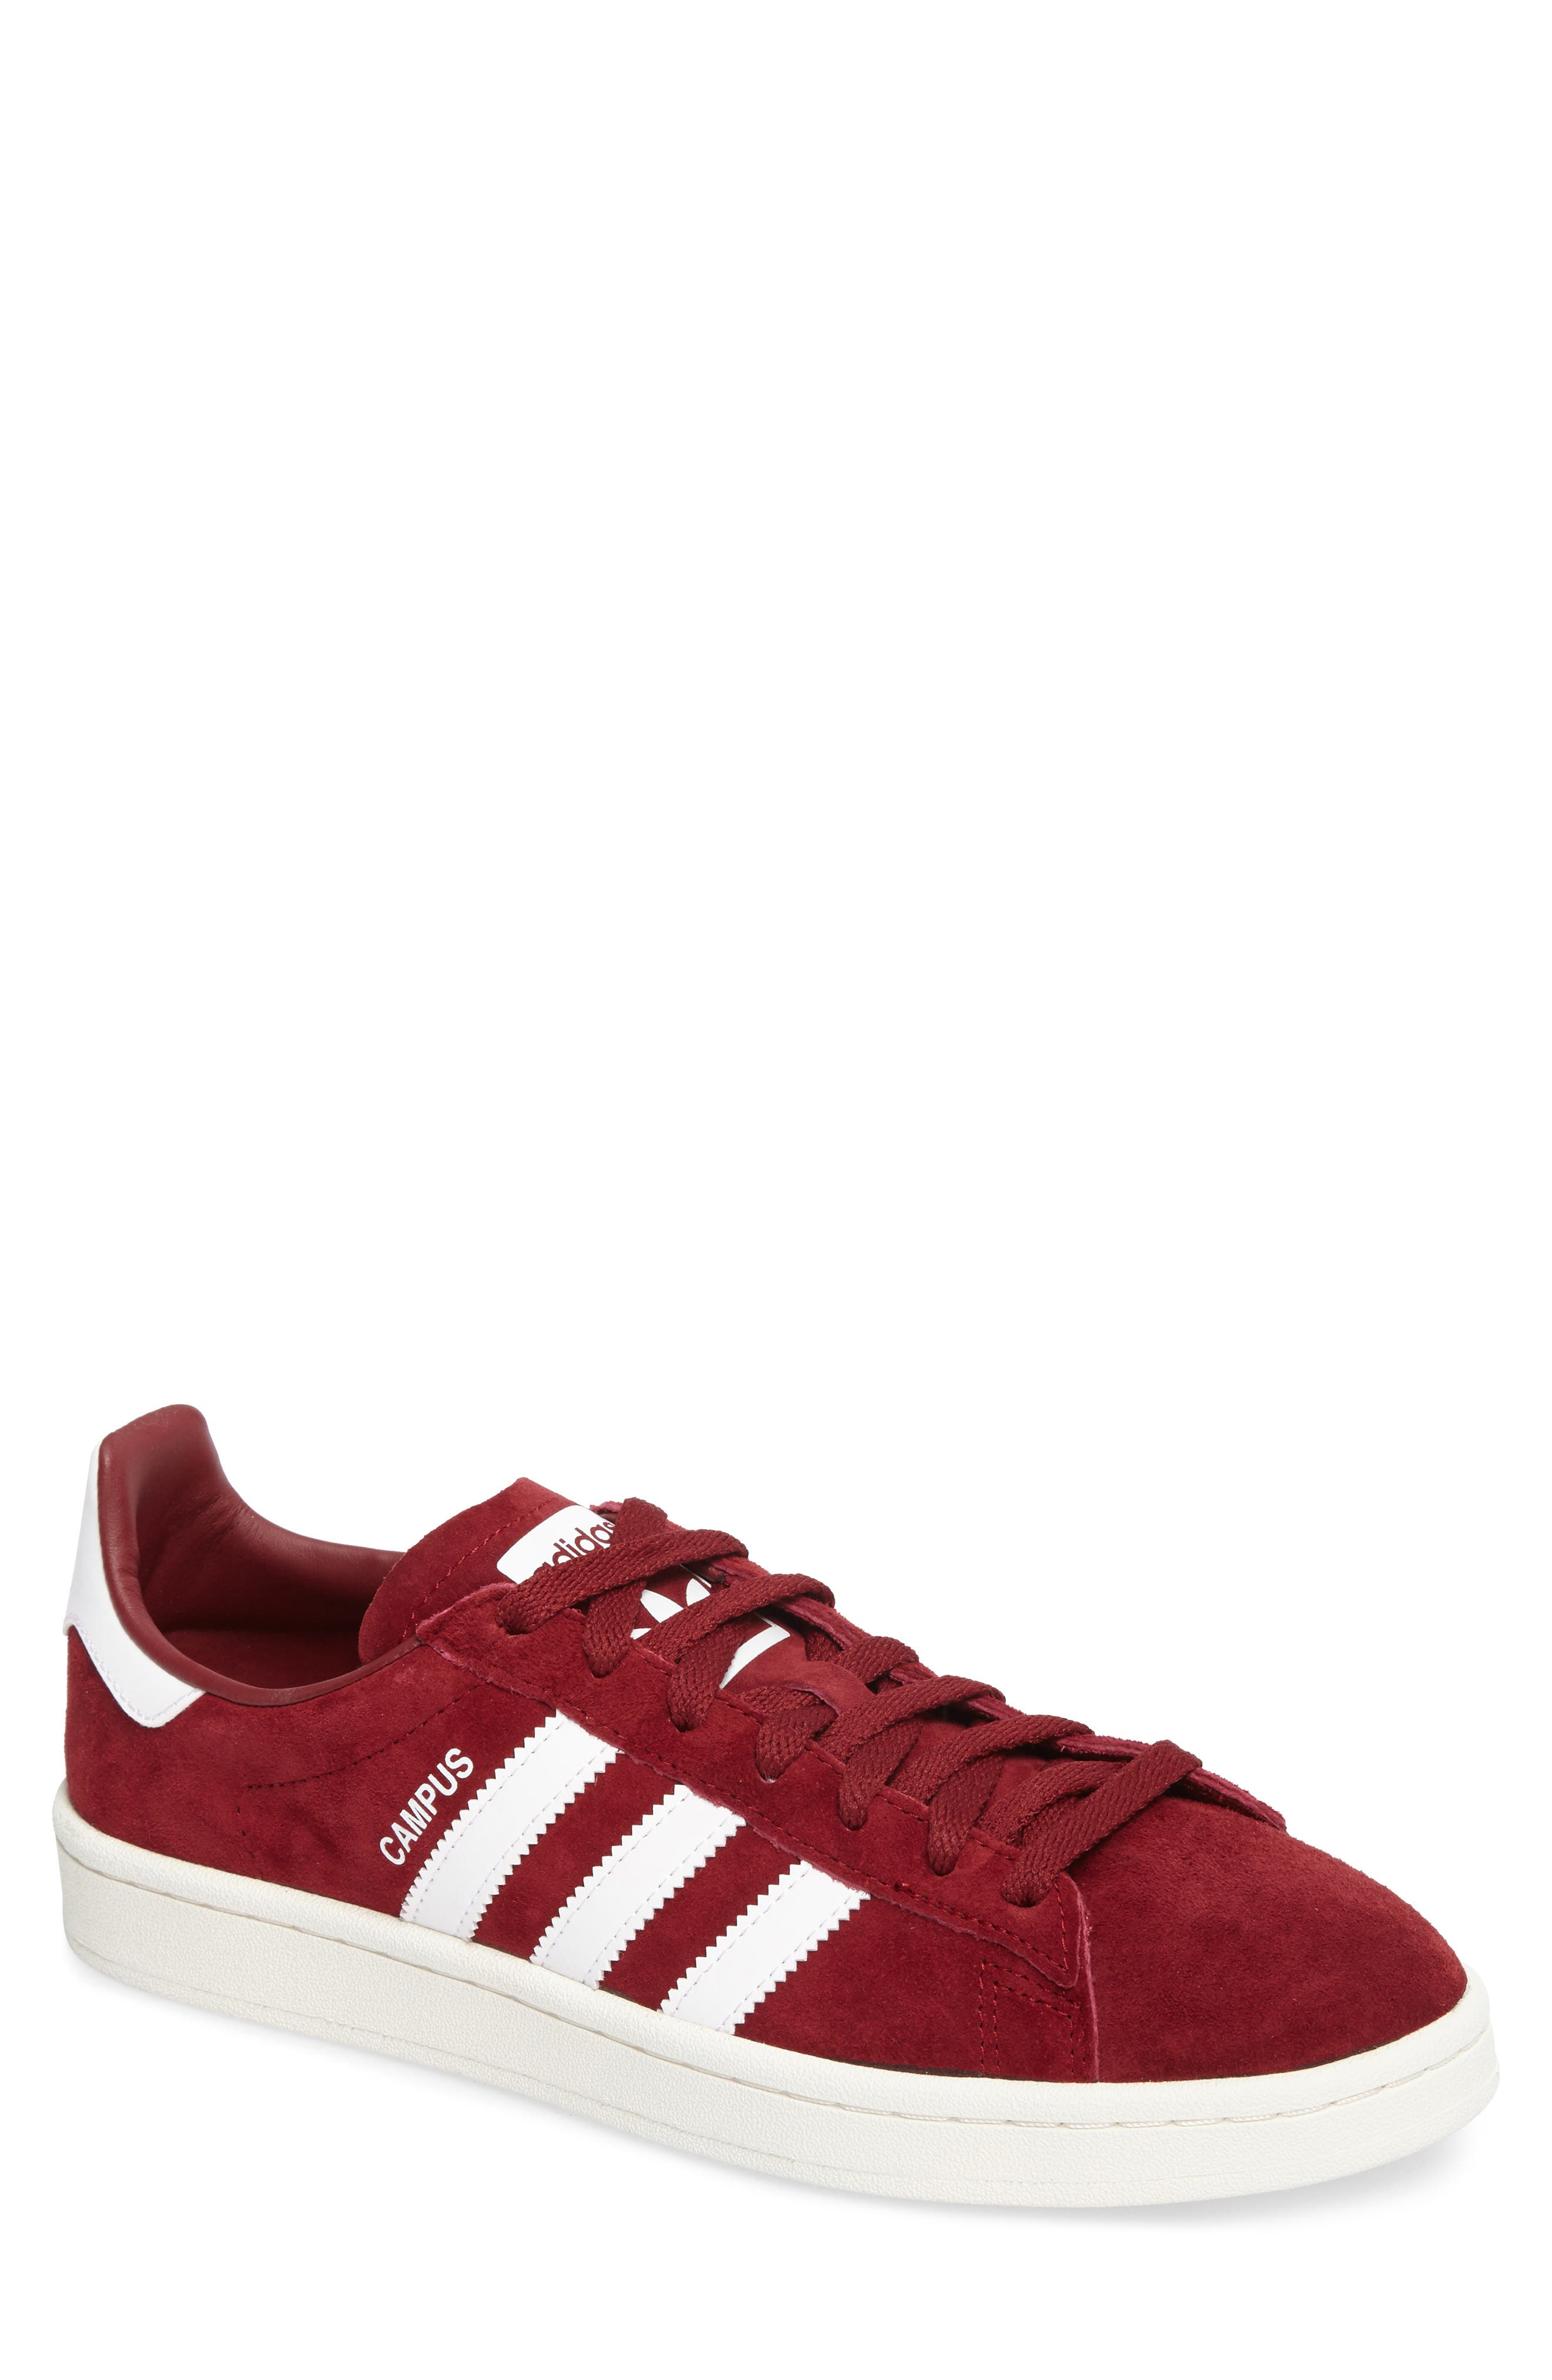 Campus Sneaker,                             Main thumbnail 1, color,                             Collegiate Burgundy/ White